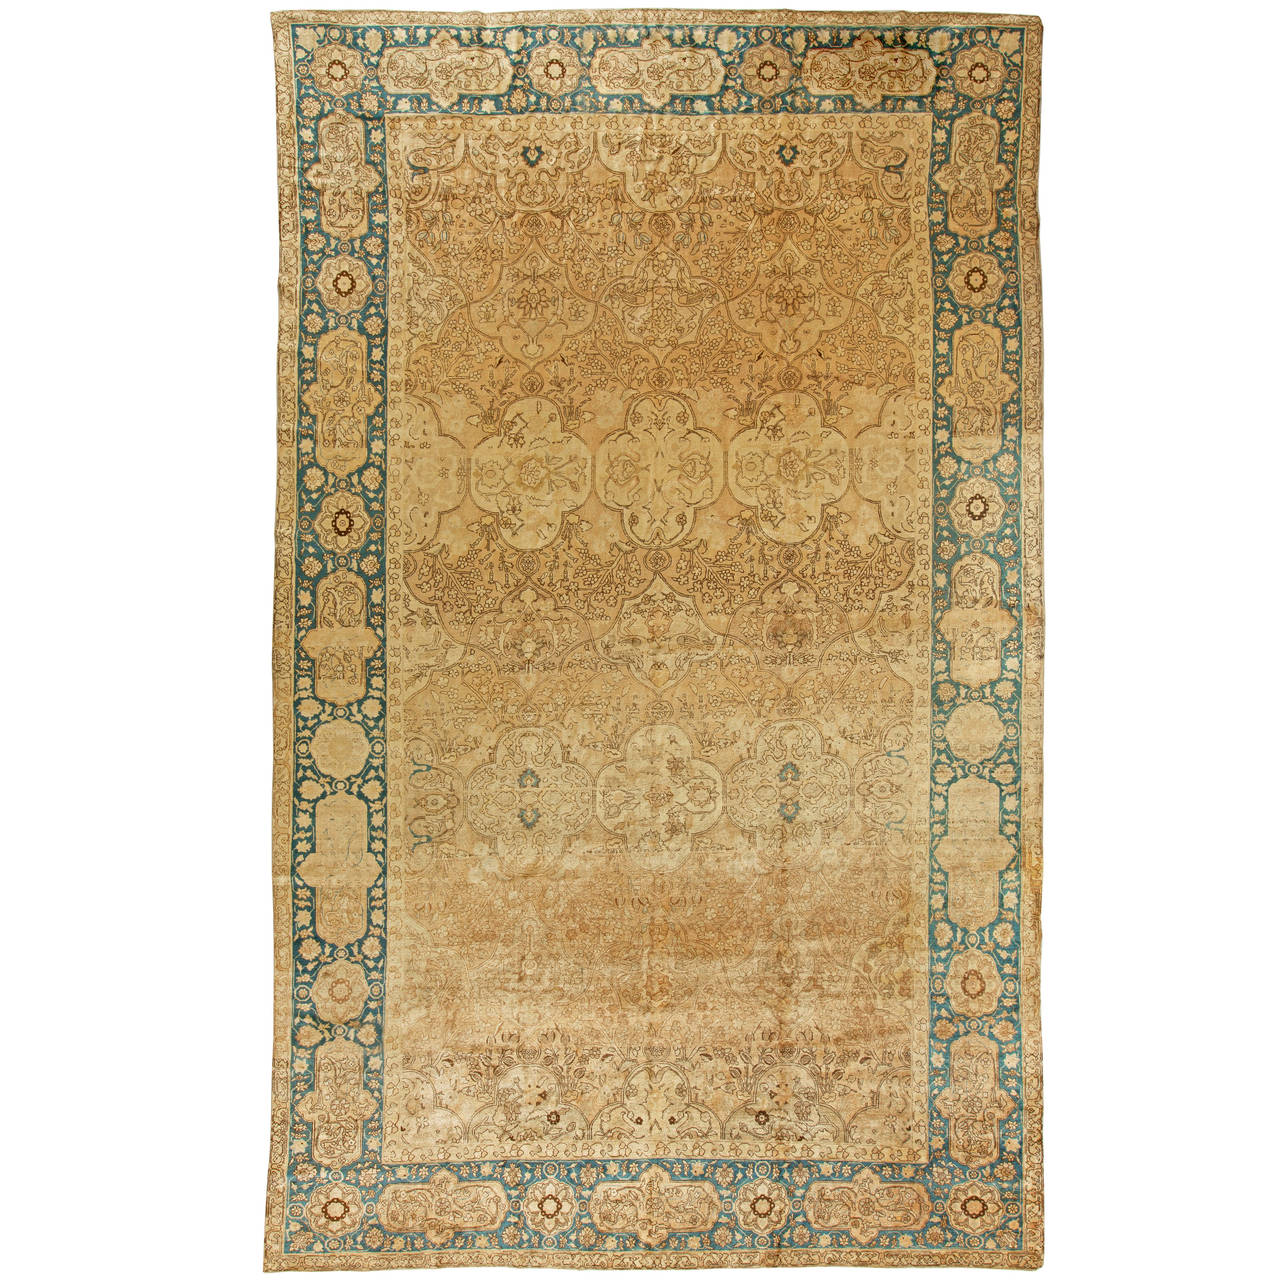 tabriz dating A handmade tabriz 50raj with elements of silk the city of tabriz is situated 600 km west of teheran and one of the largest cities in iran and also the.